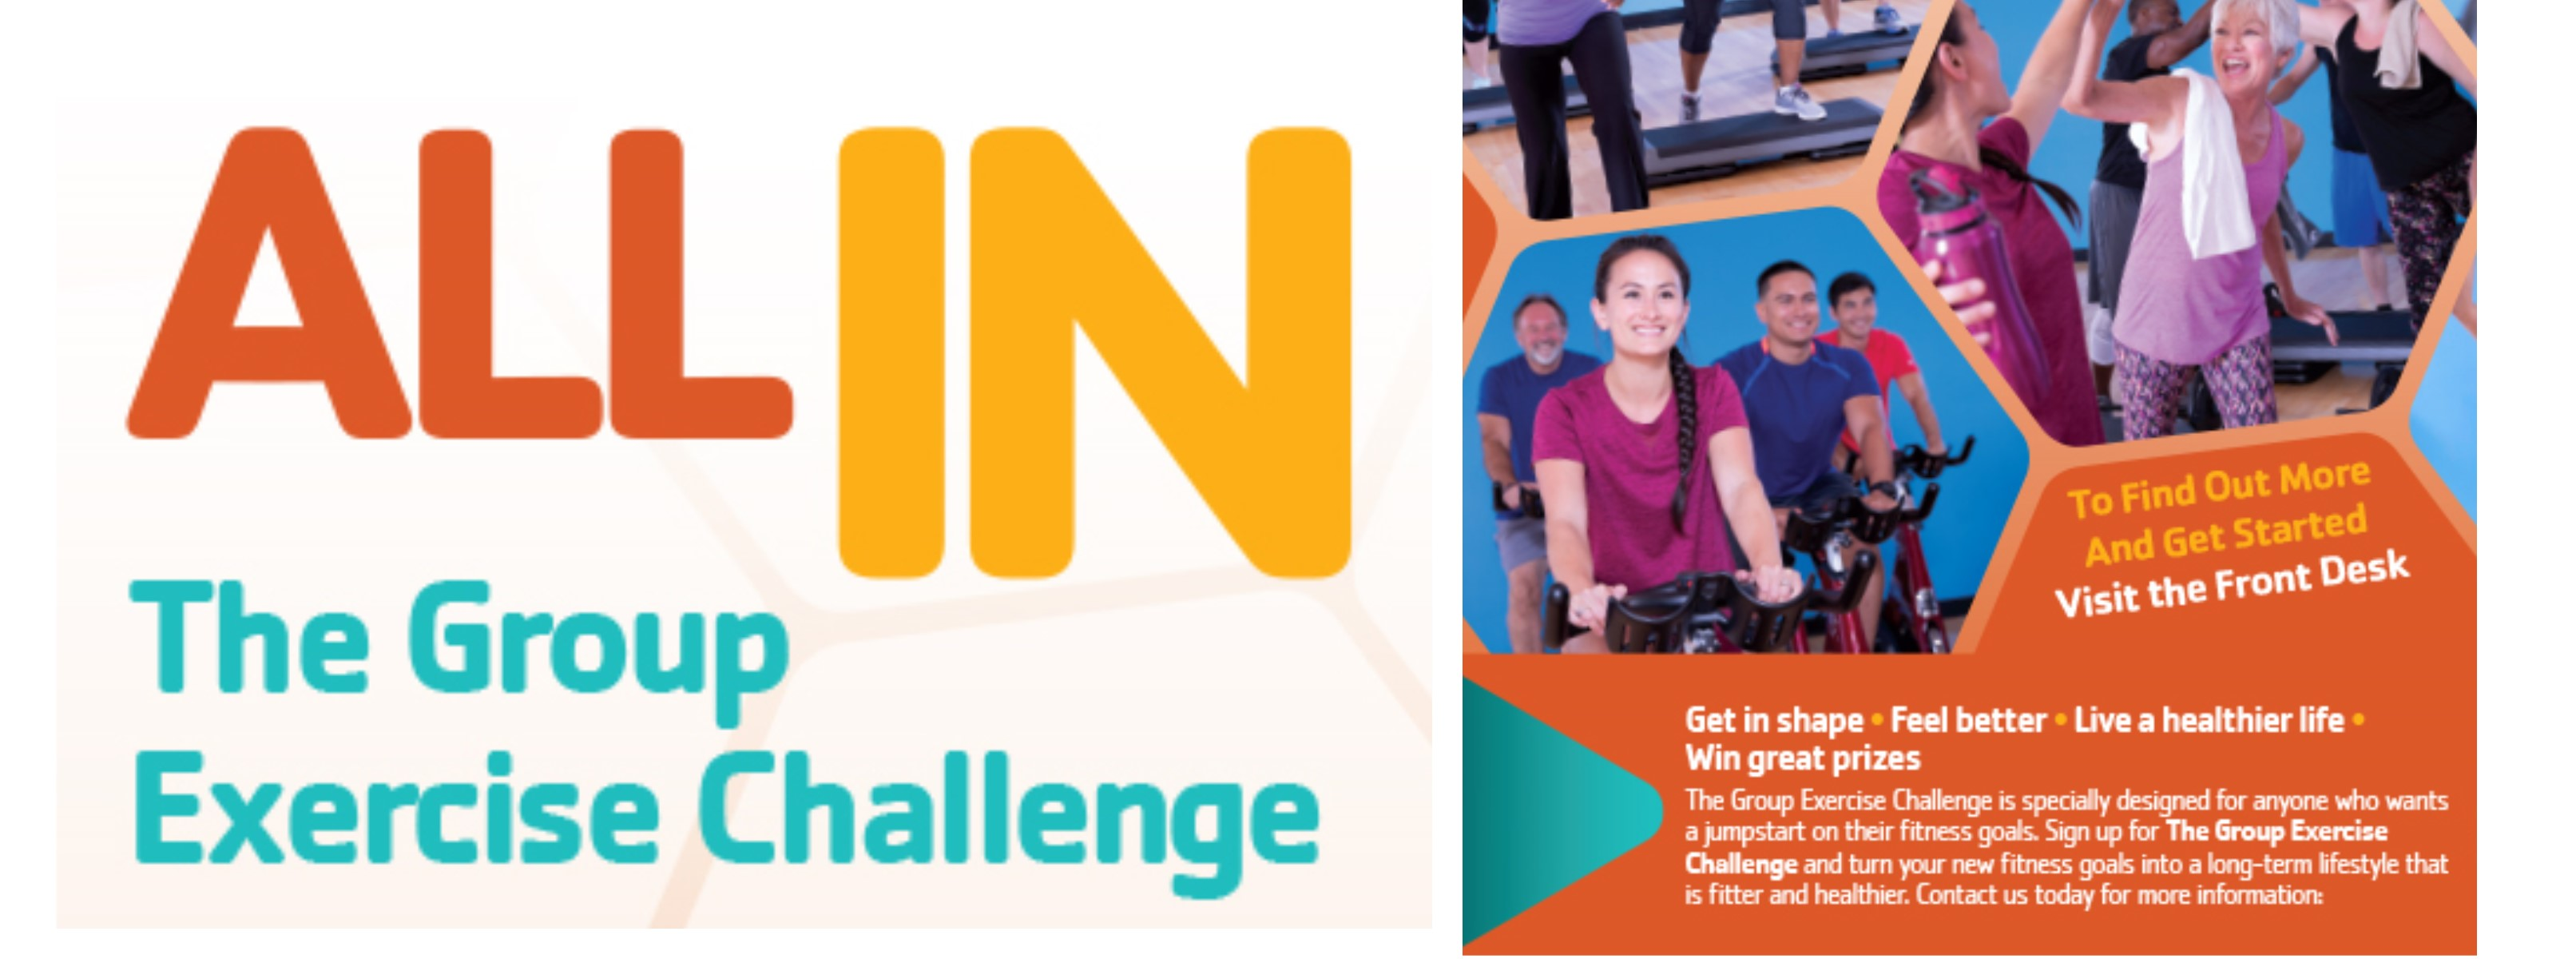 All In! The Group Exercise Challenge